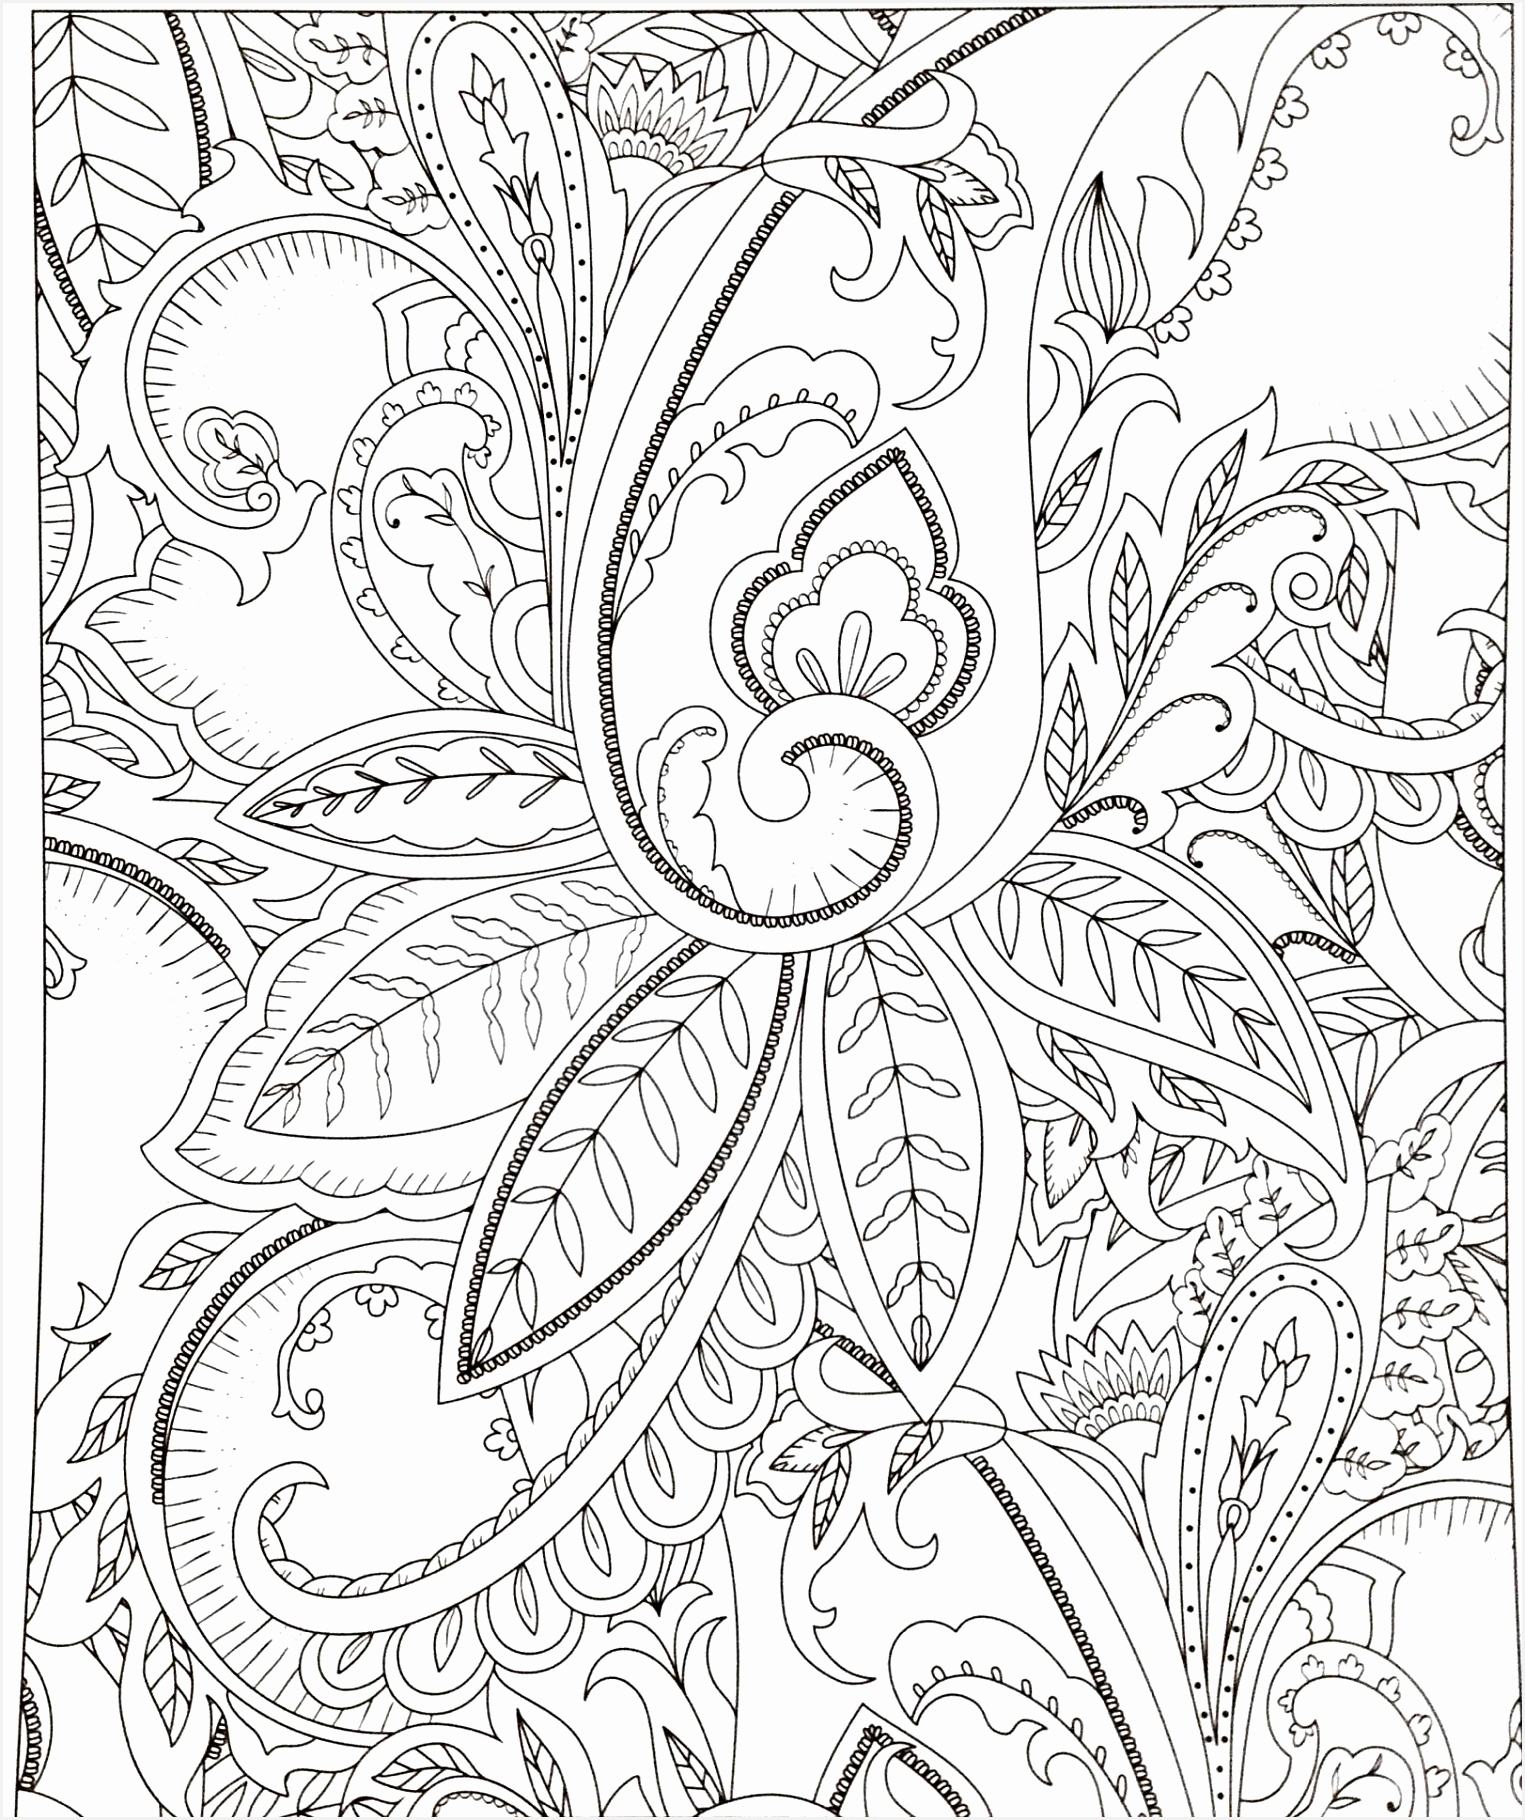 Free Printable Receipts Periodic Free Printable Coloring Christmas Pages Cool Coloring Printables 0d 182015255iDpu